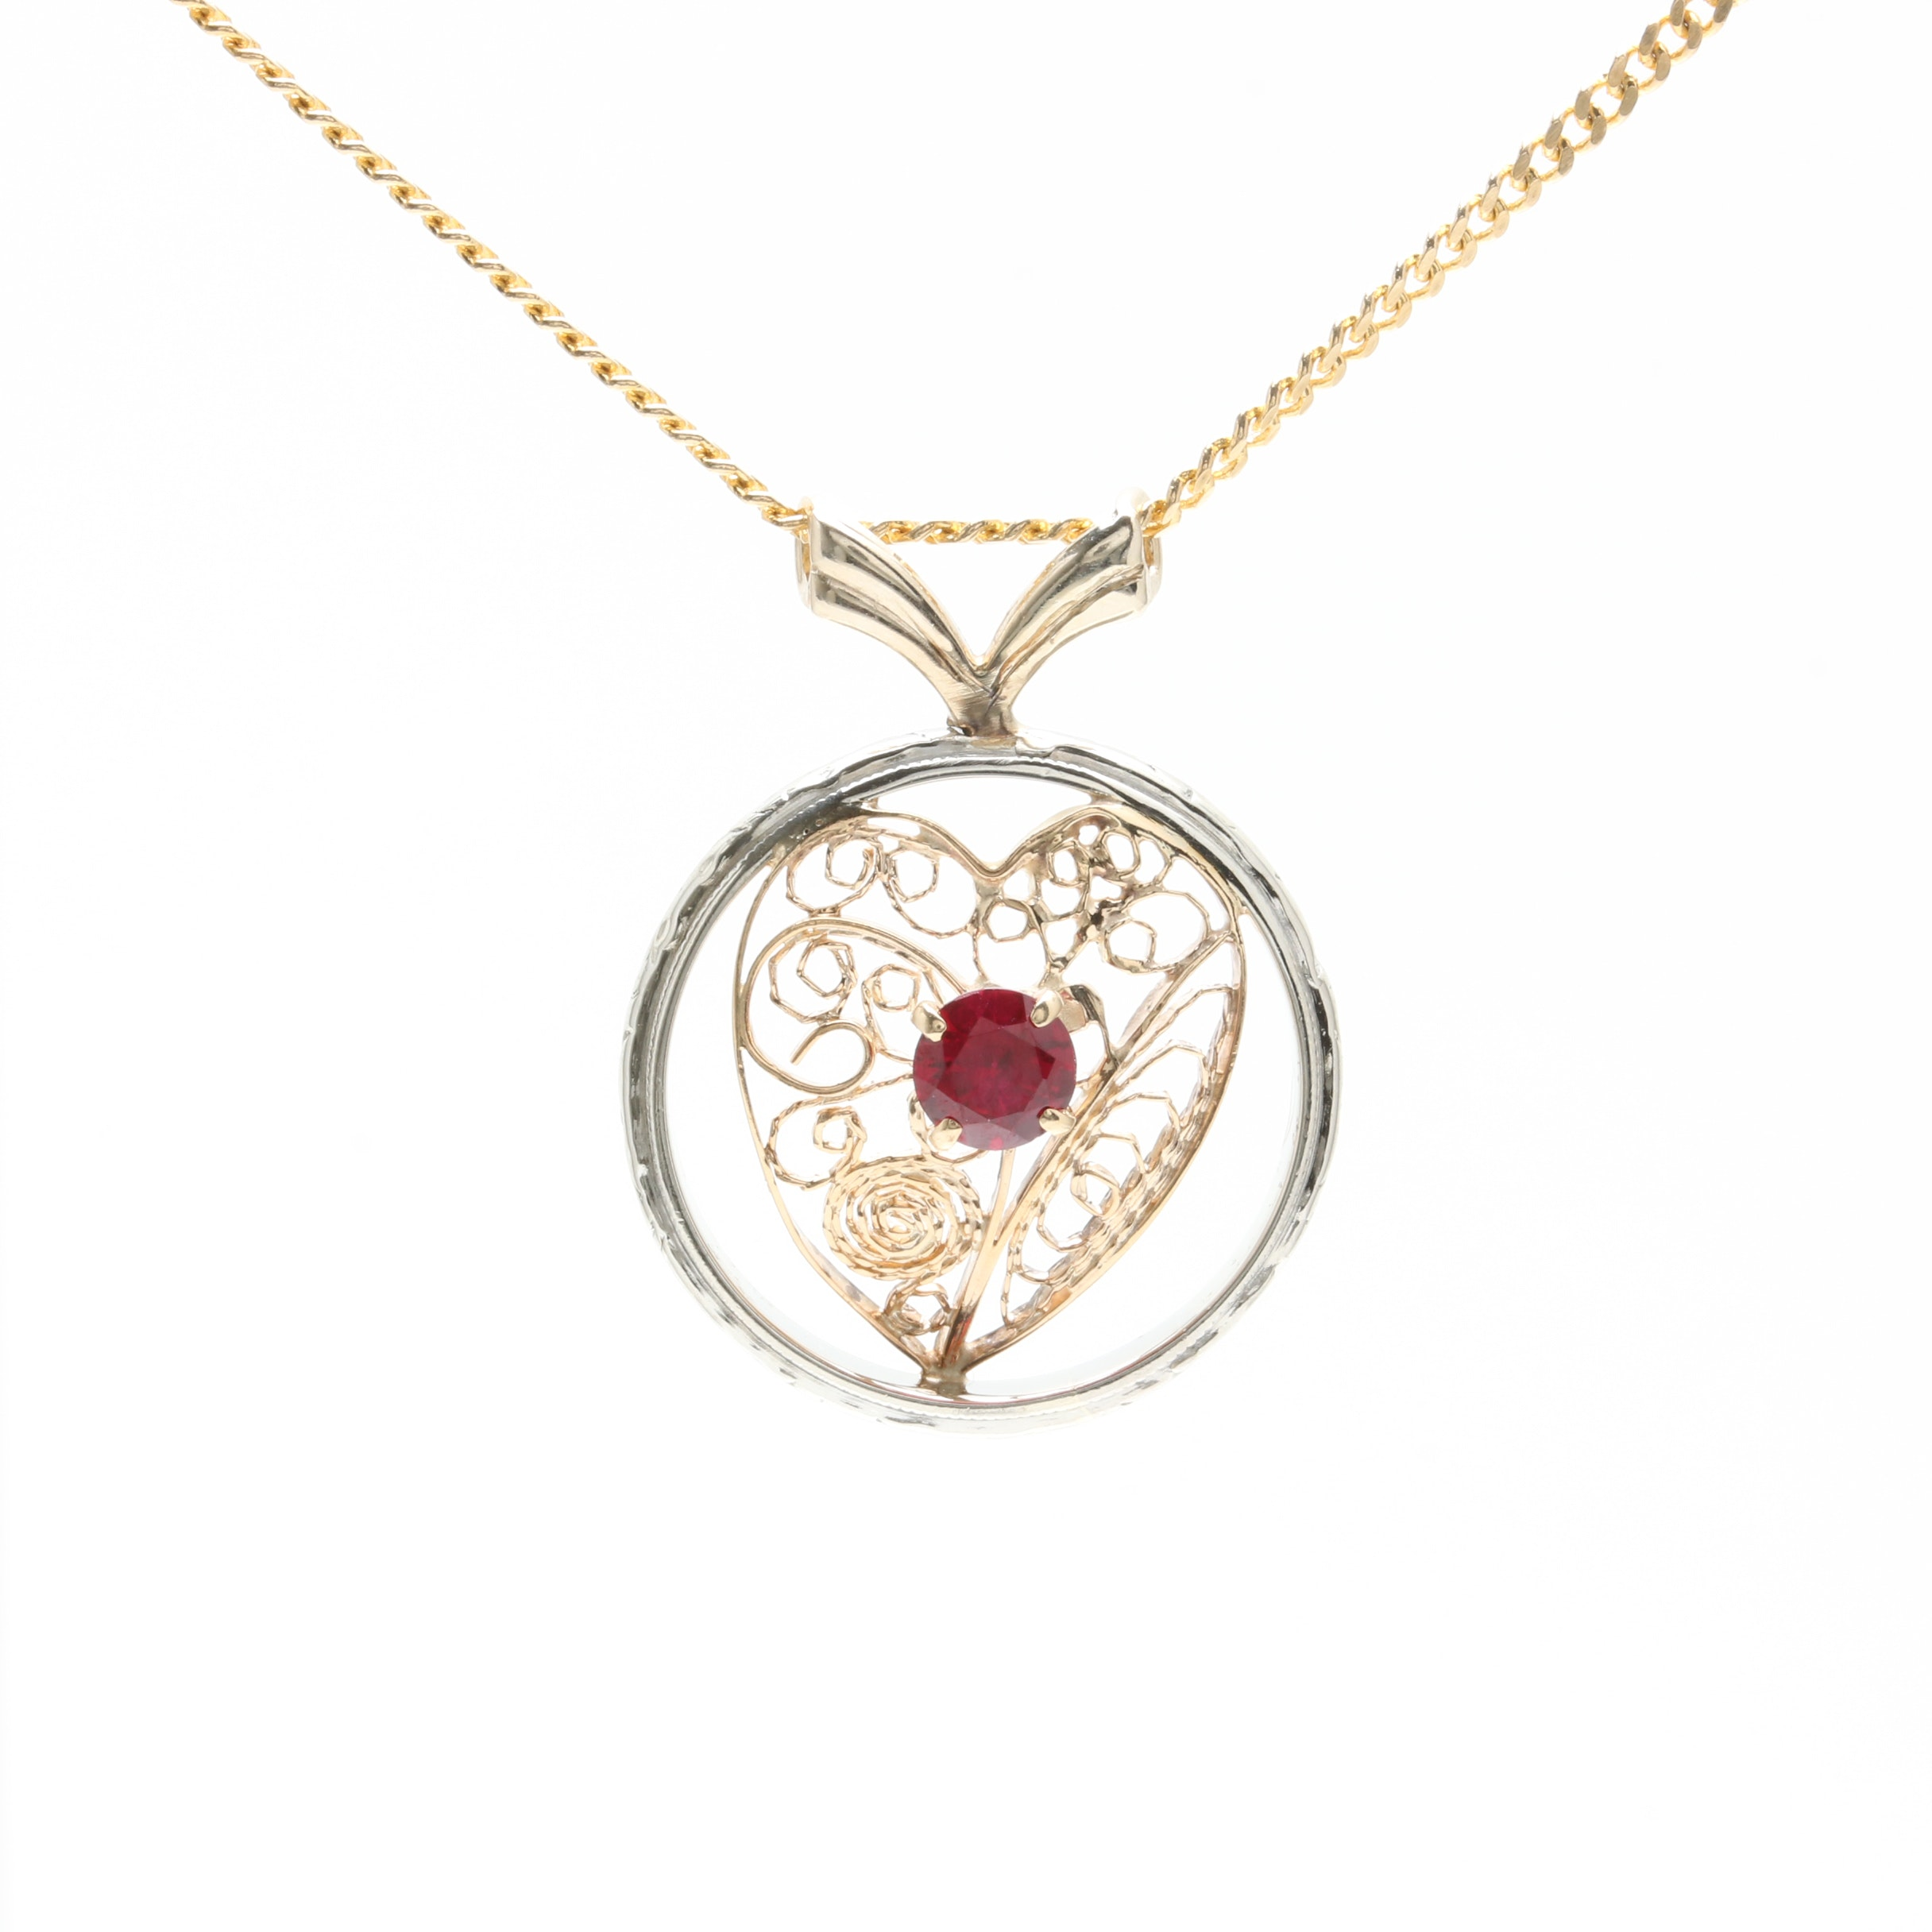 14K Yellow Gold Synthetic Ruby Heart Necklace with 18K White Gold Accents